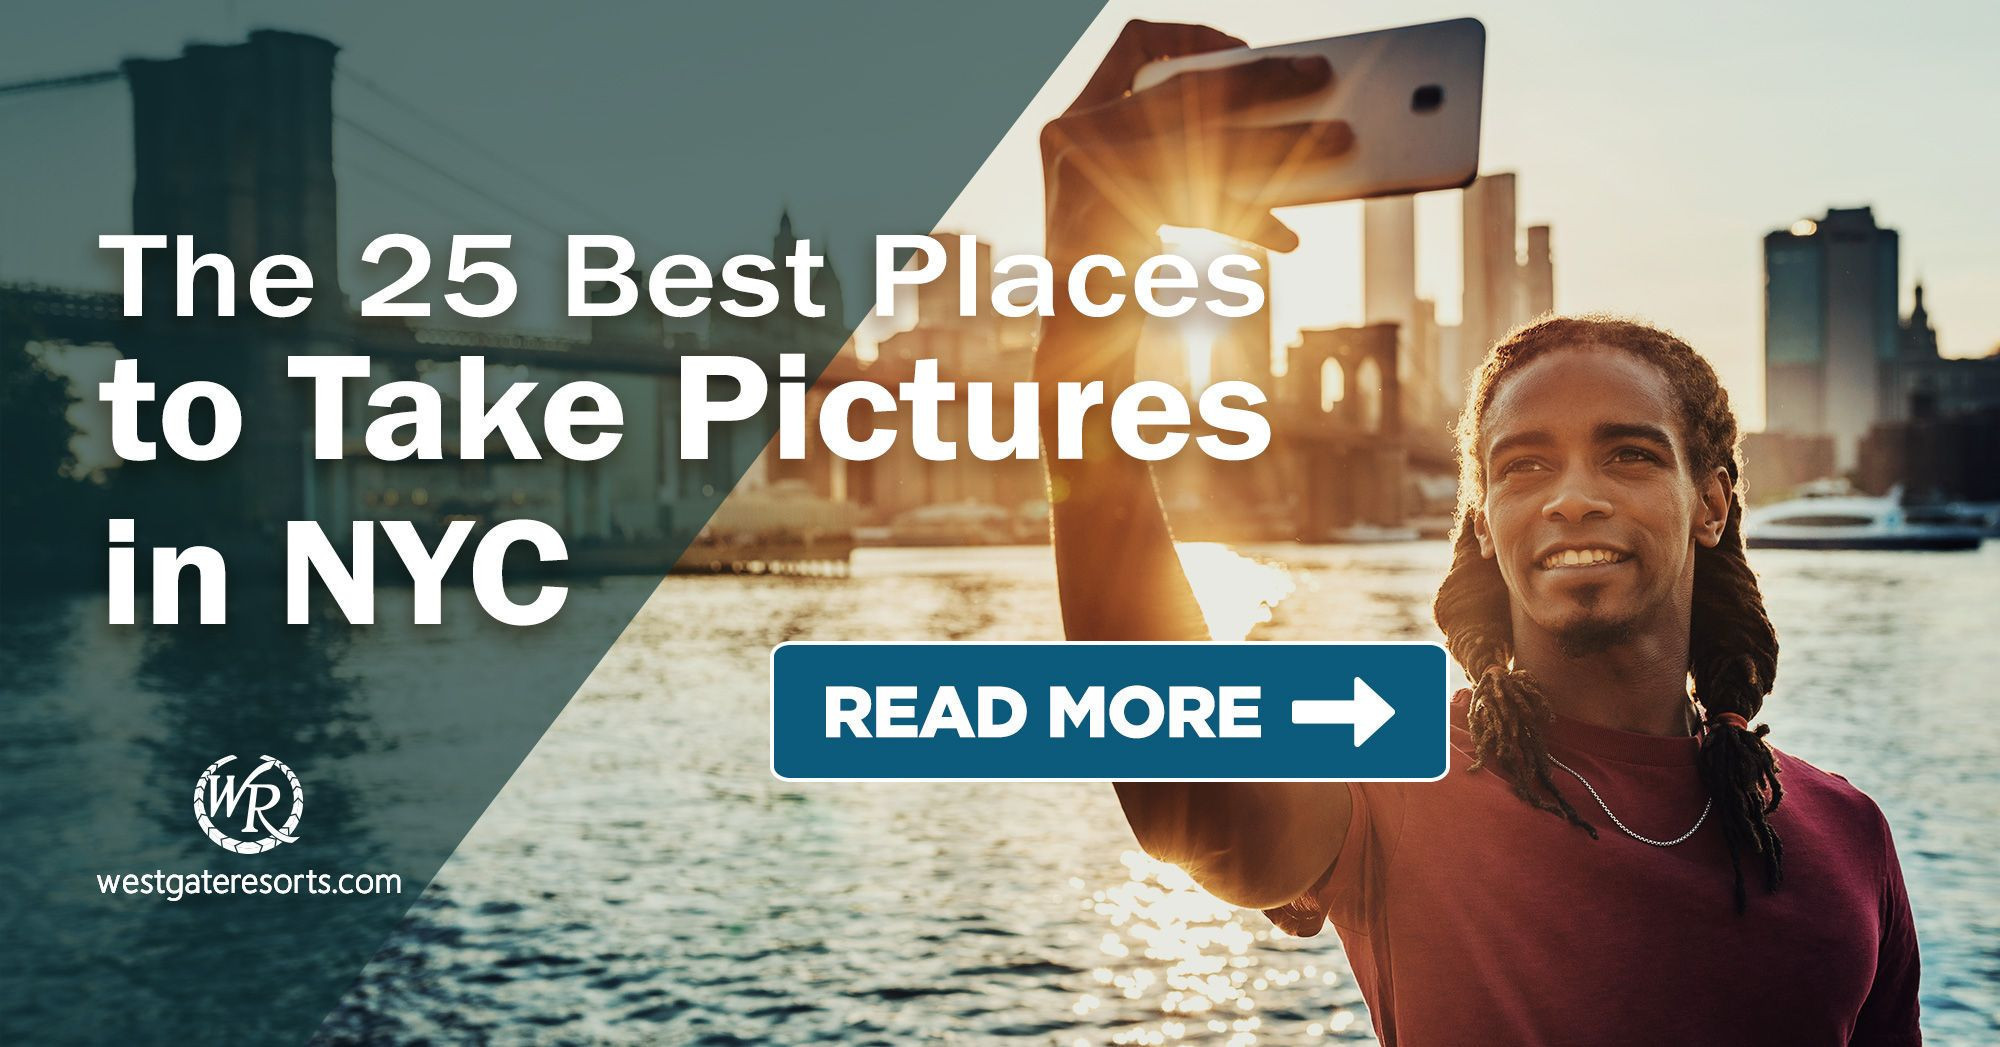 The 25 Best Places to Take Pictures in NYC